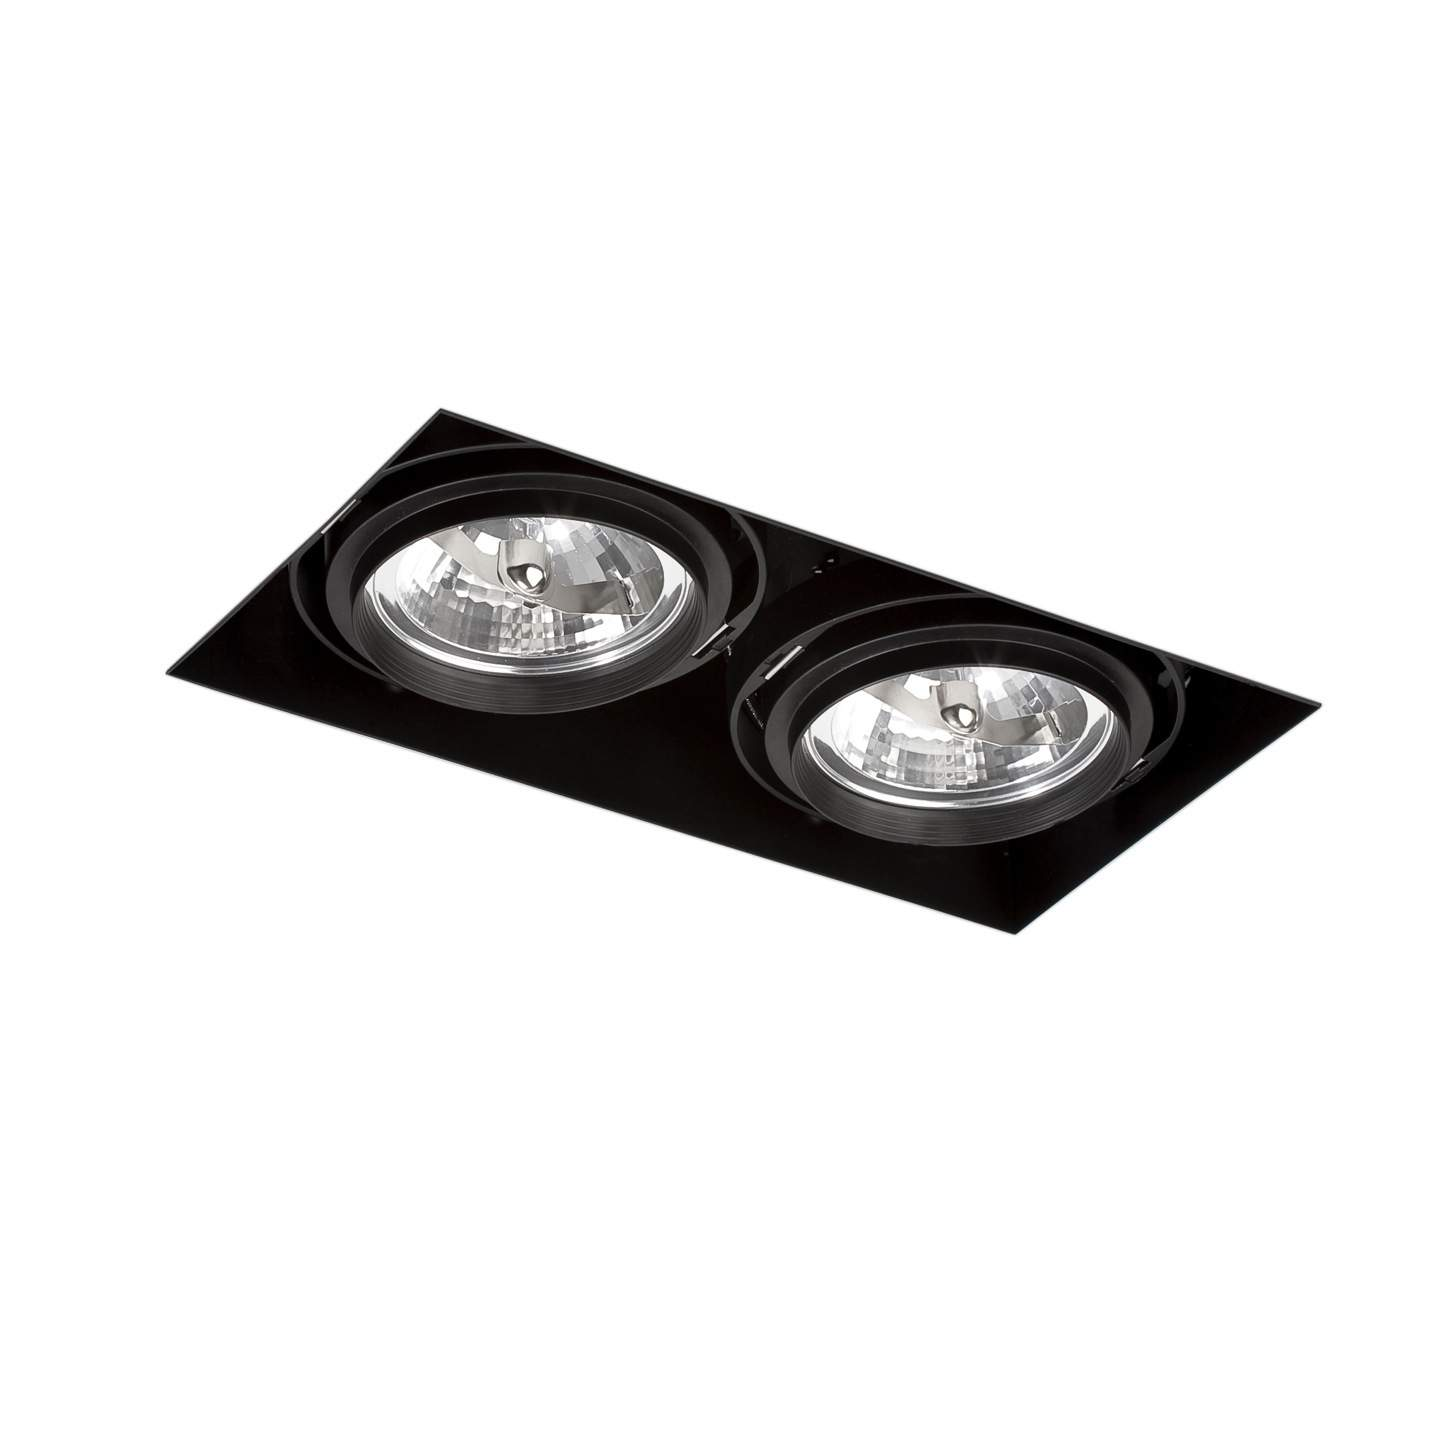 Gingko Recessed Ceiling adjustable 2xQR-111 100w Black / without Framework